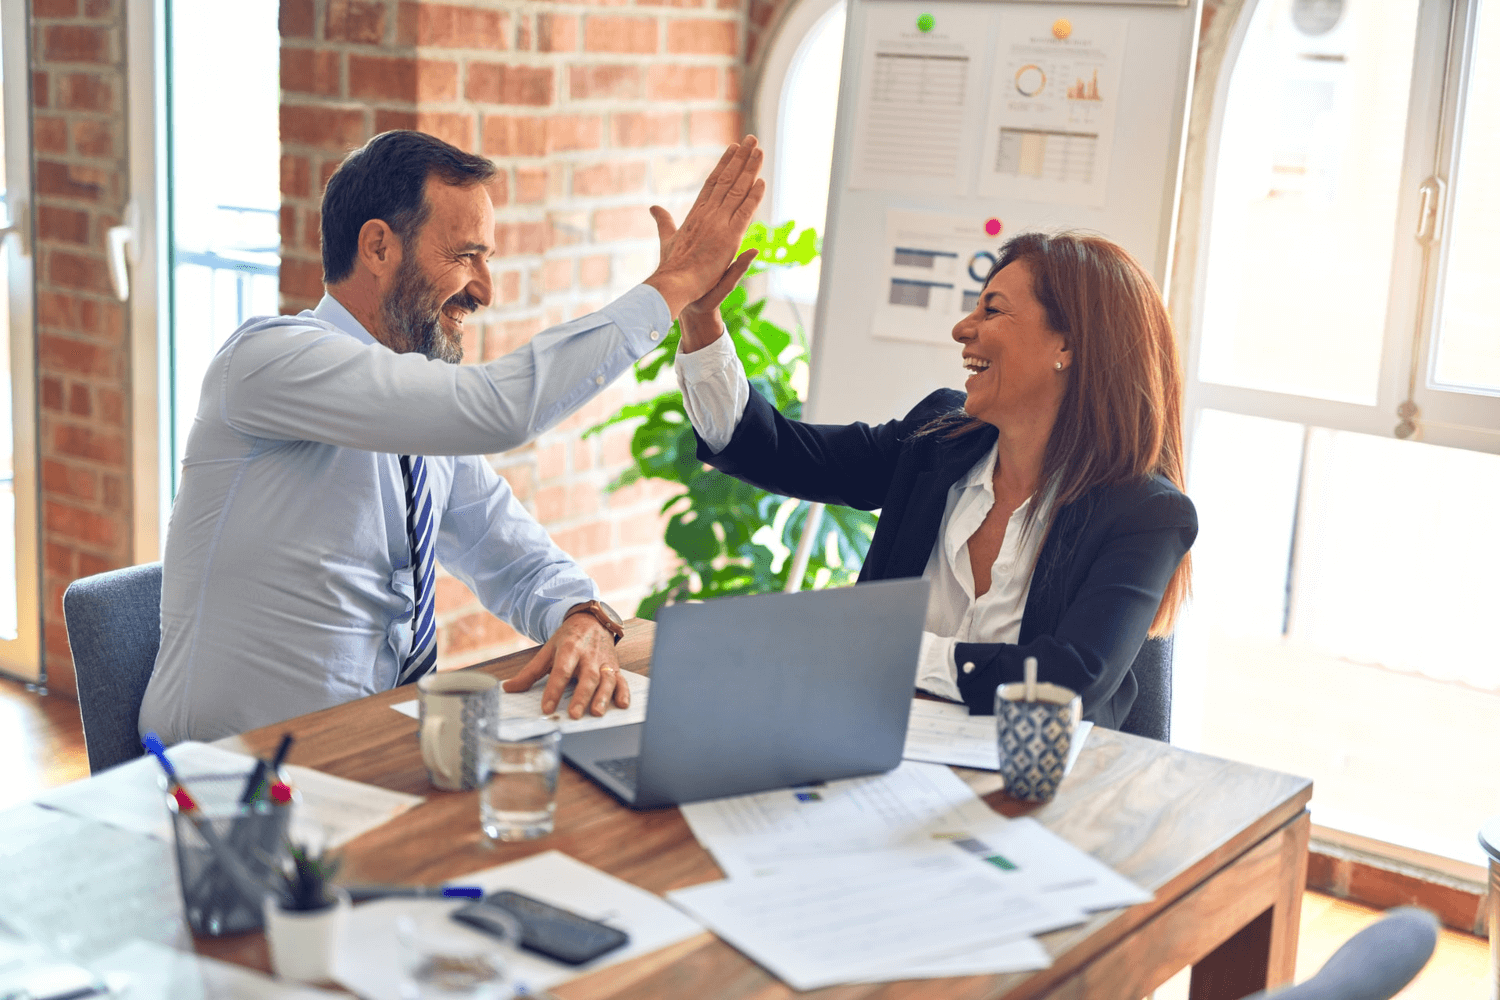 Small business owners high-fiving